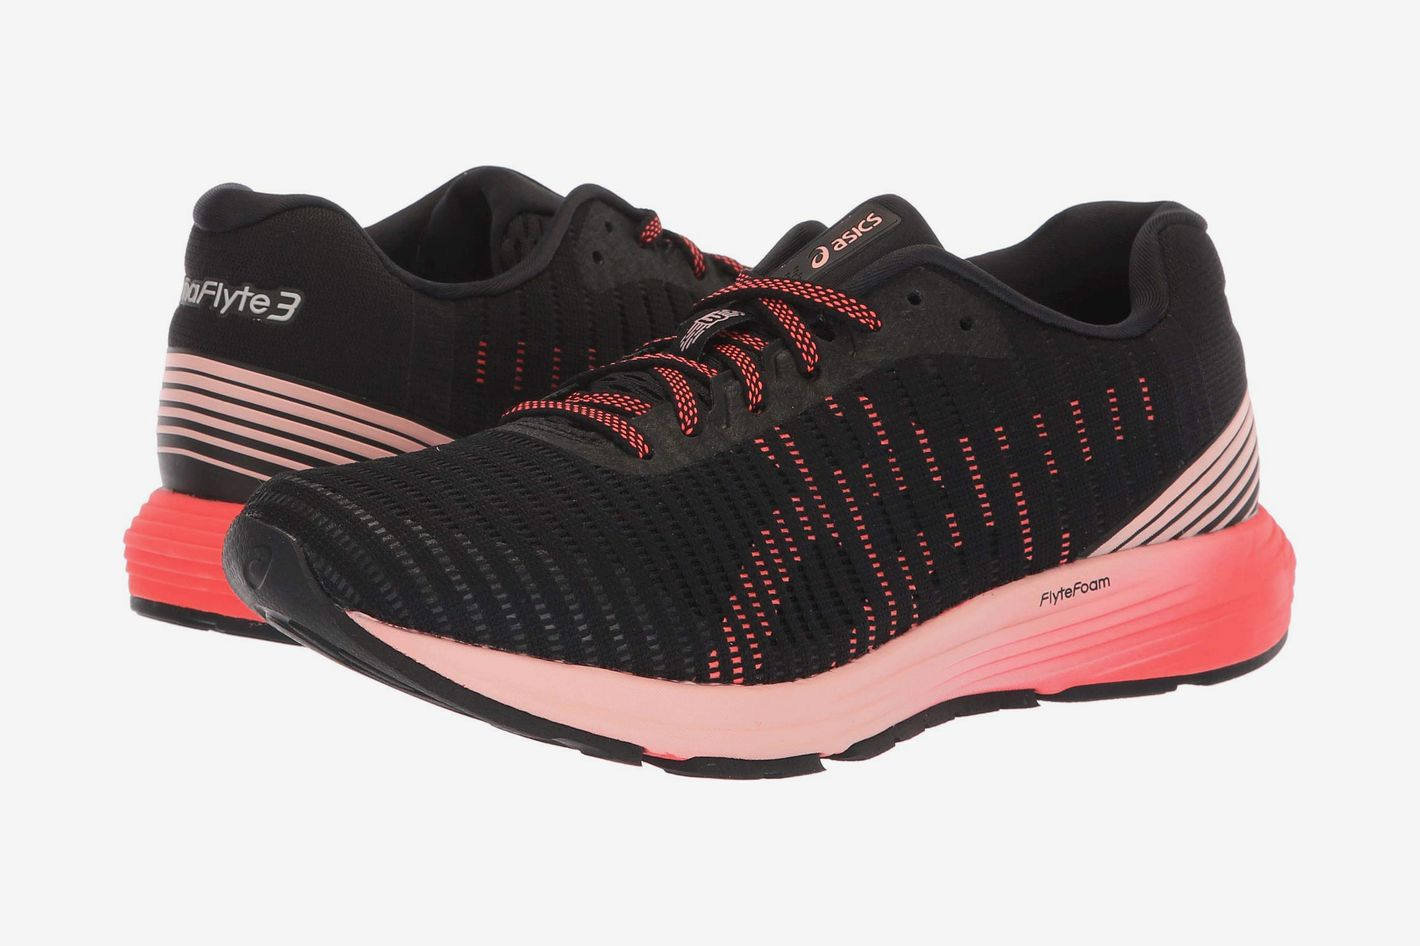 6cb2c9a2d5a6 The 15 Best Sneakers for Running